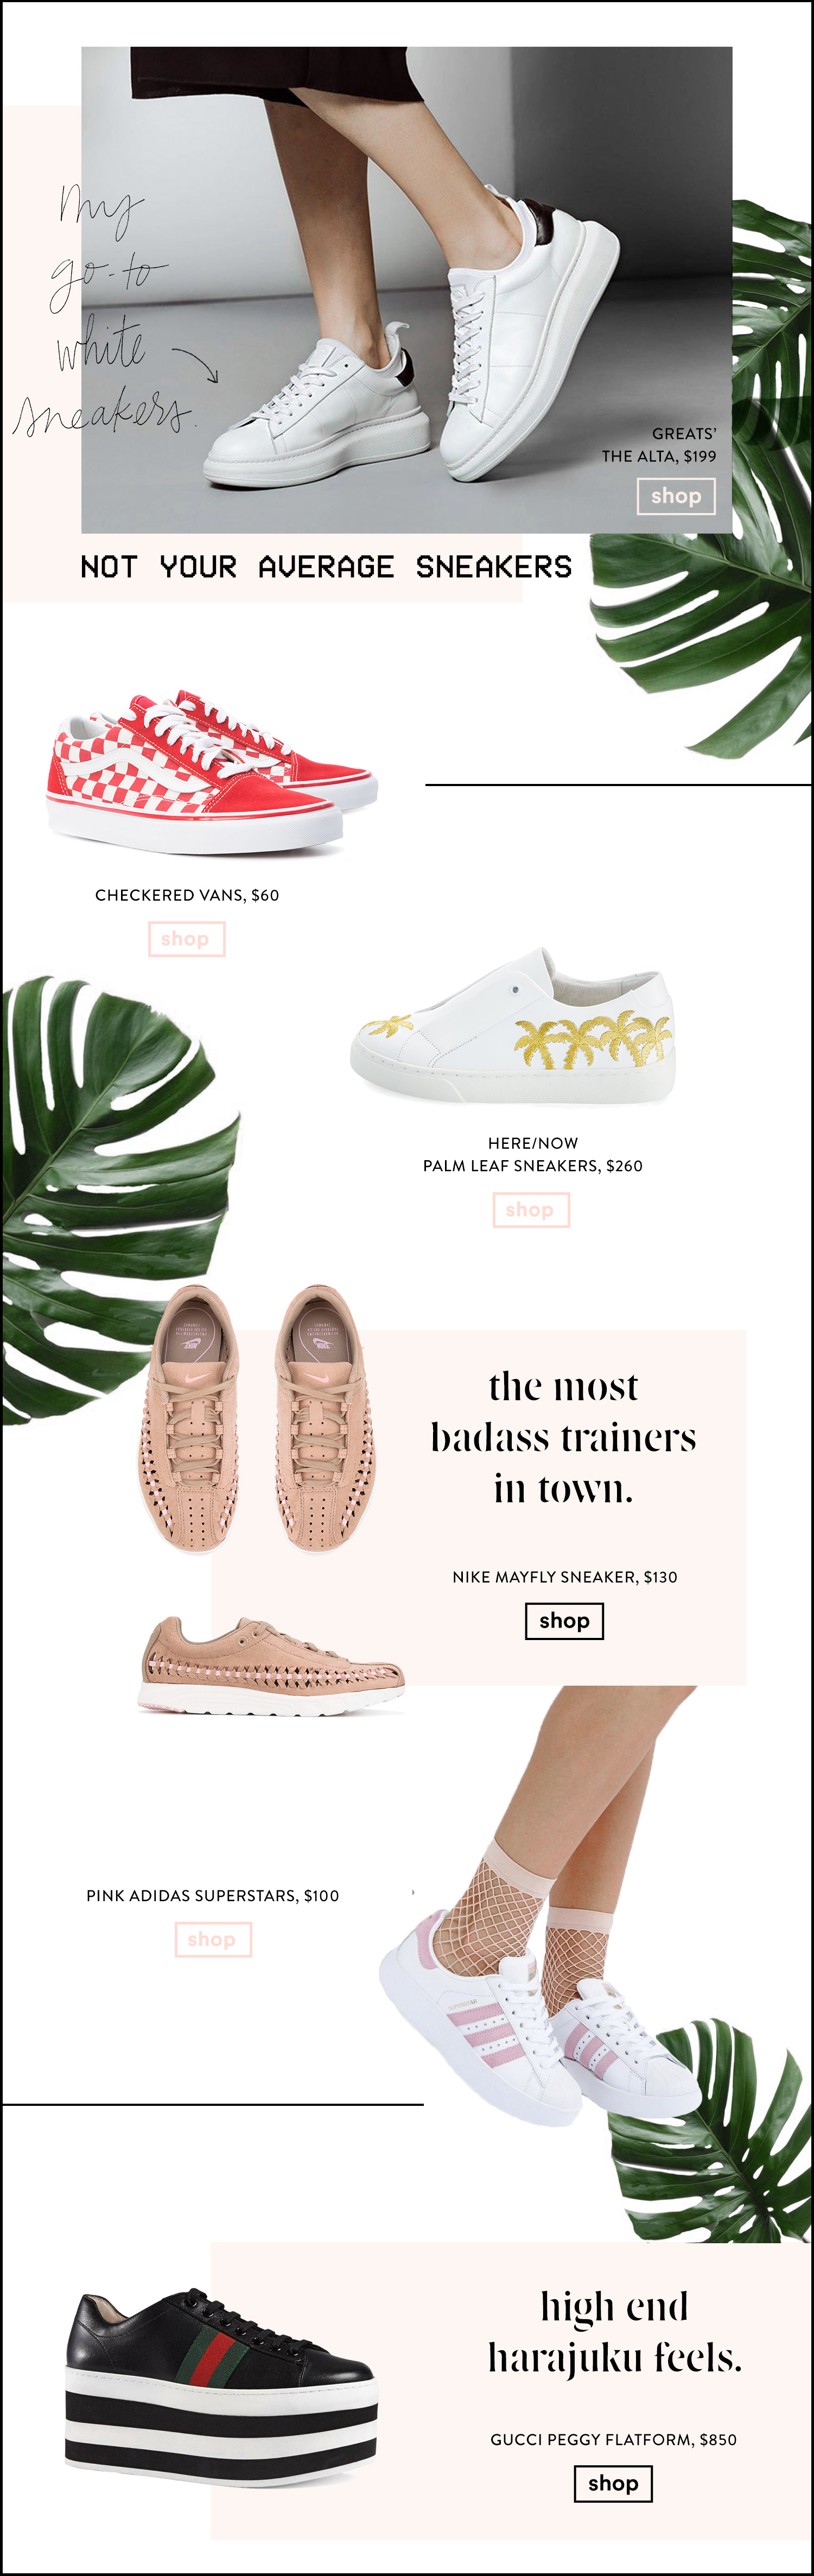 The best sneakers: Not Your average sneakers by Fashion Blogger Erica Stoleman